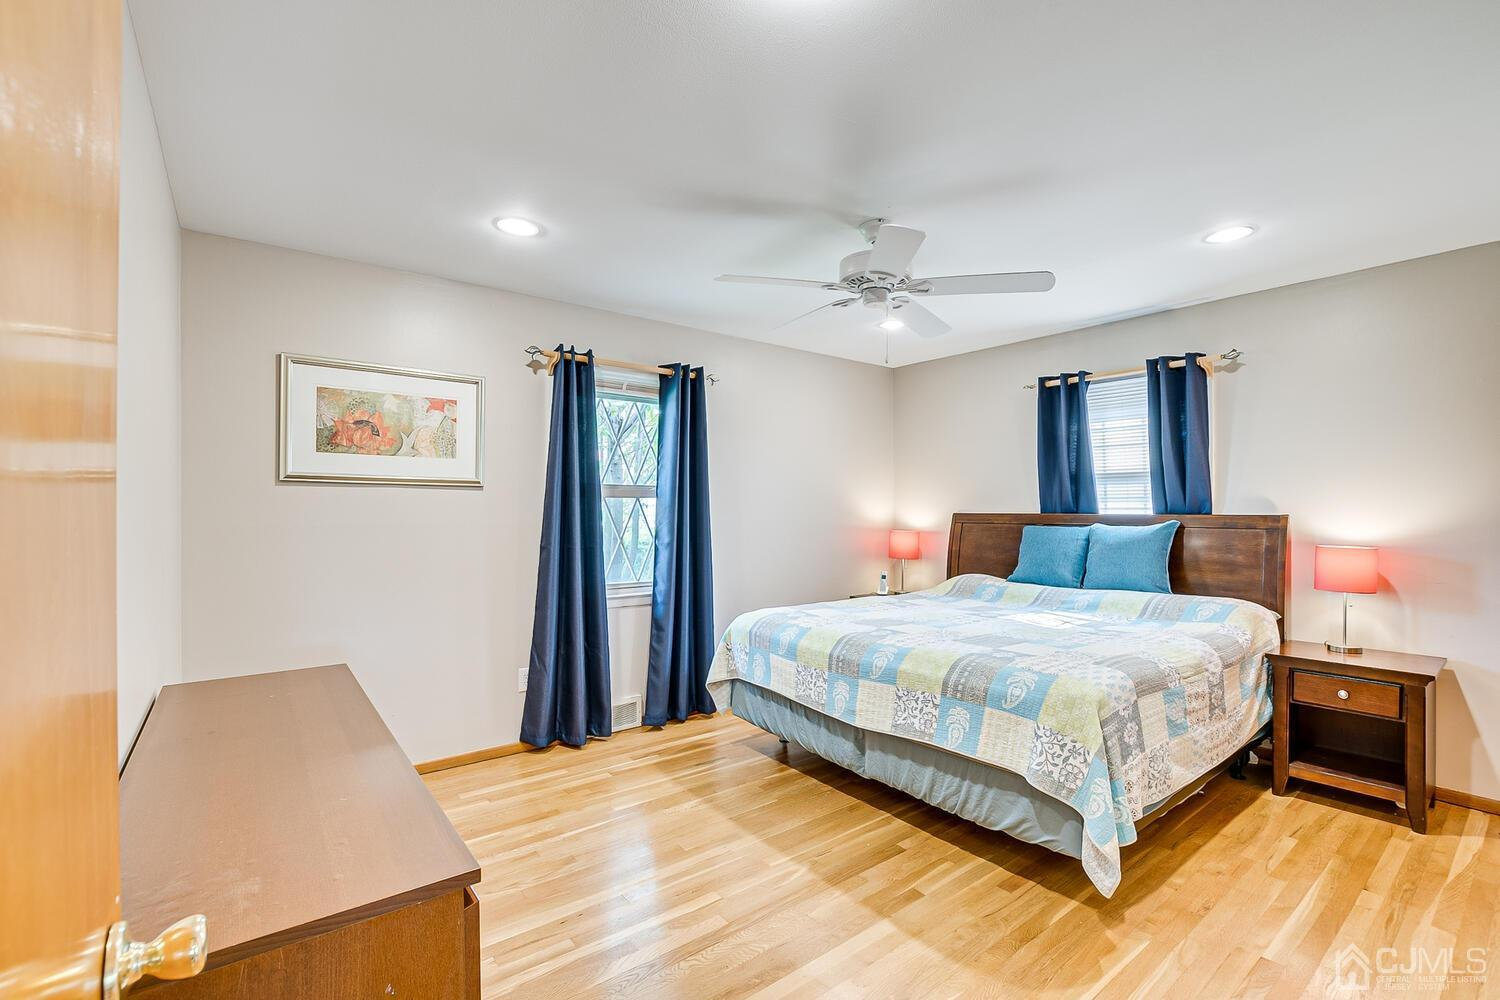 Large Master Bedroom fits a King Size Bed, Recessed Lighting and Fan.